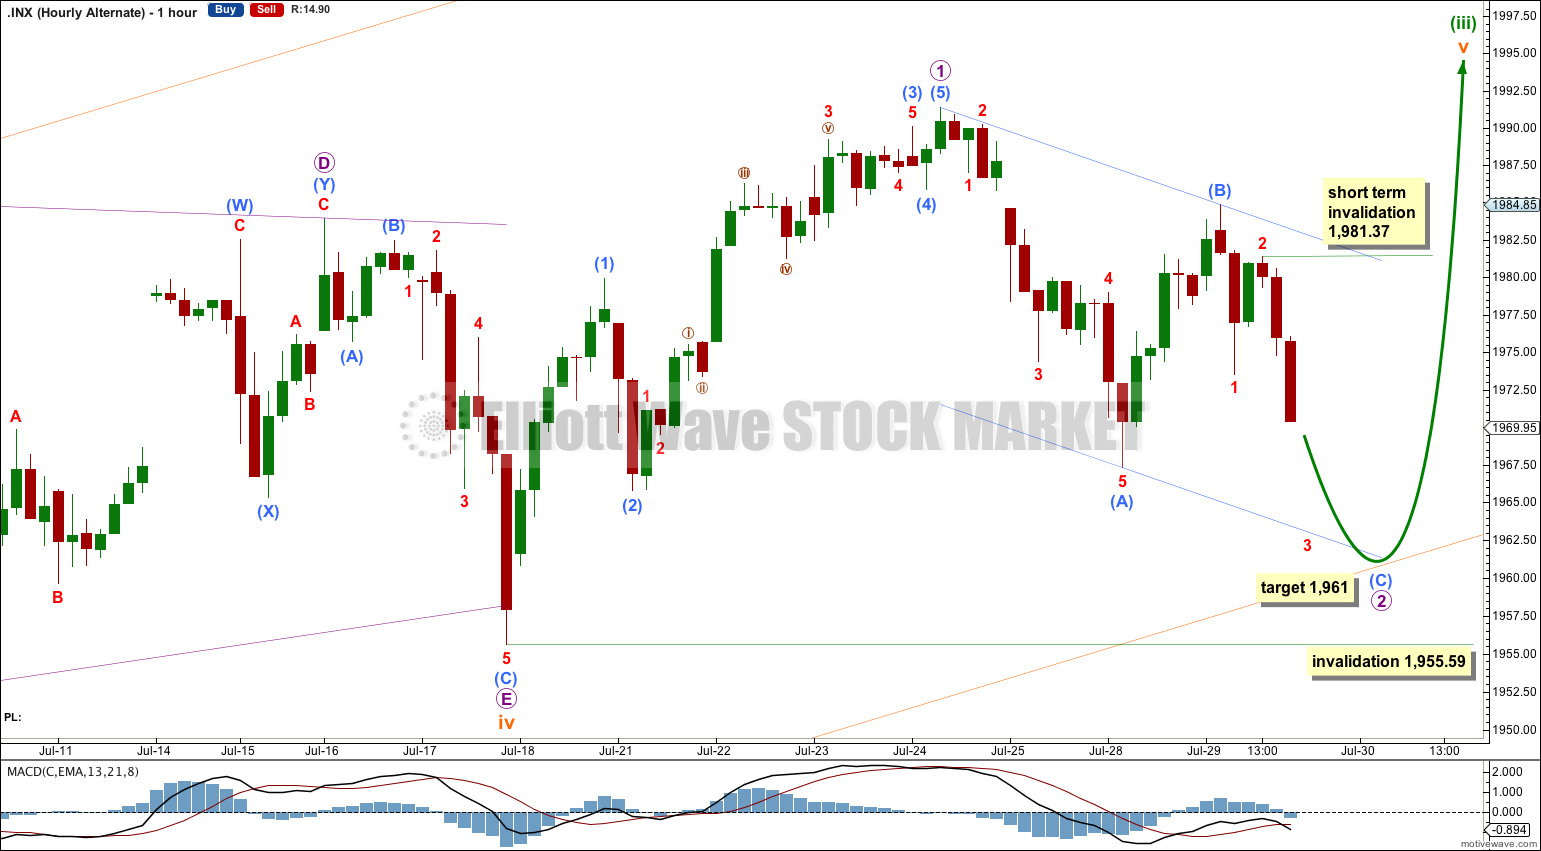 S&P 500 hourly alternate 2014